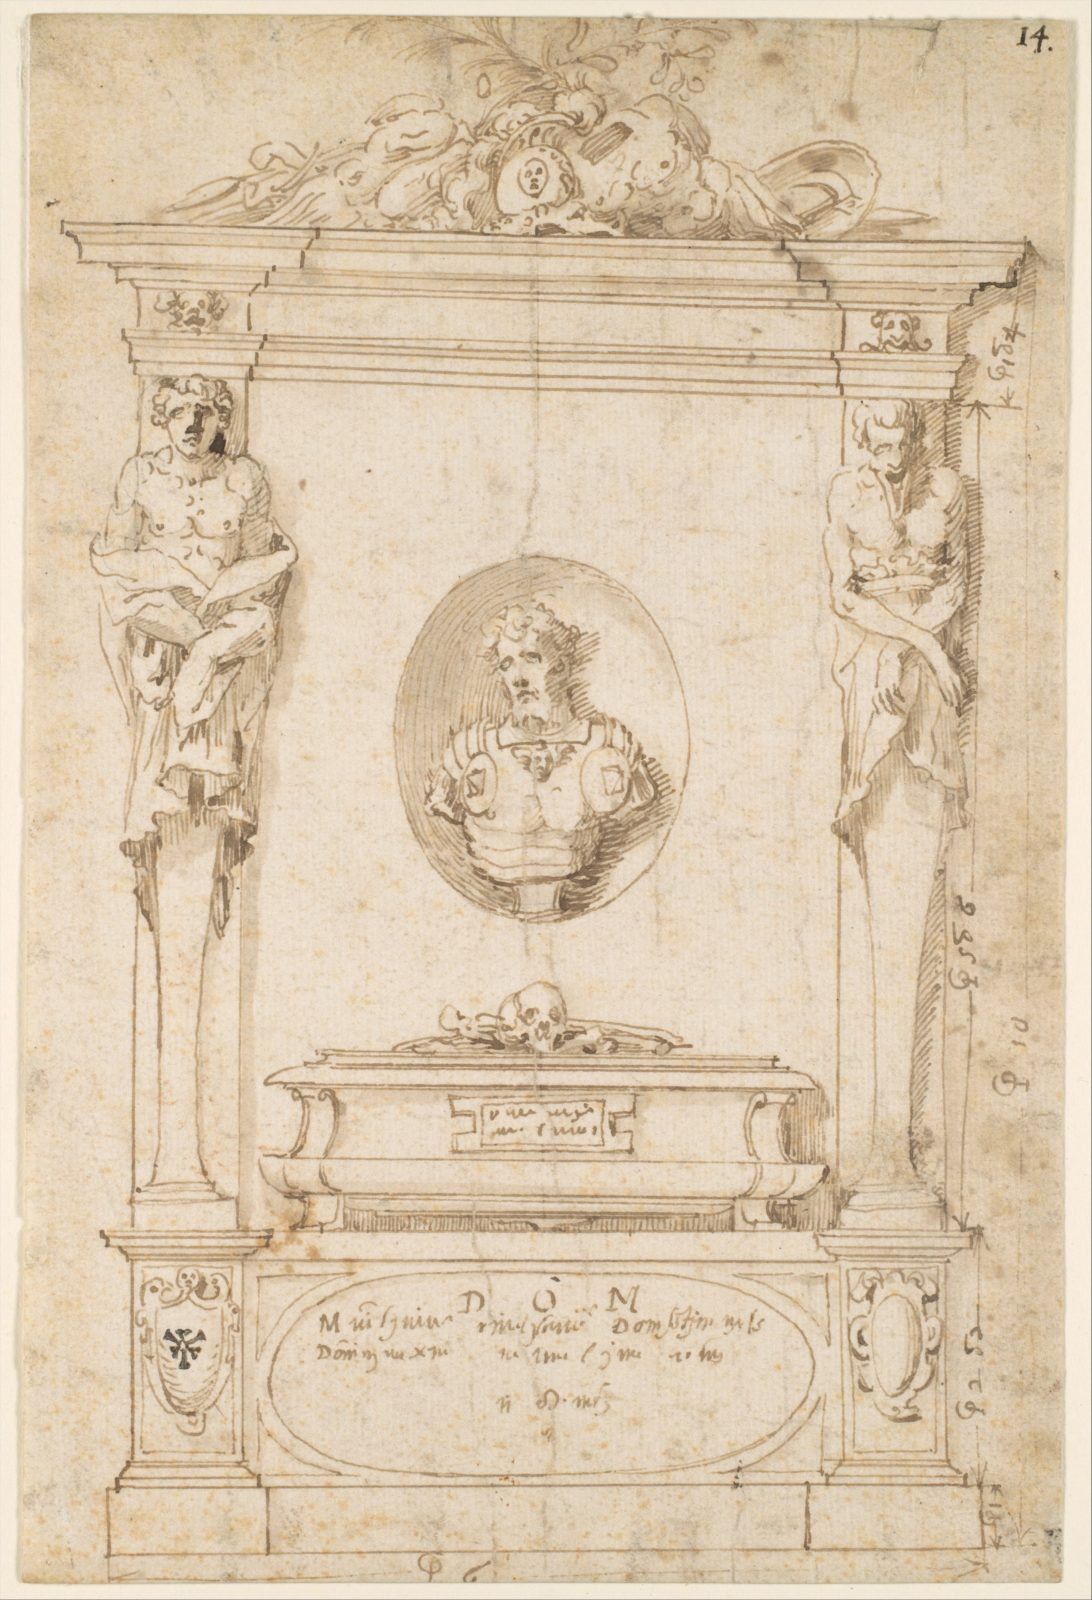 Design for a Tomb with Herms and a Niche with a Bust Portrait